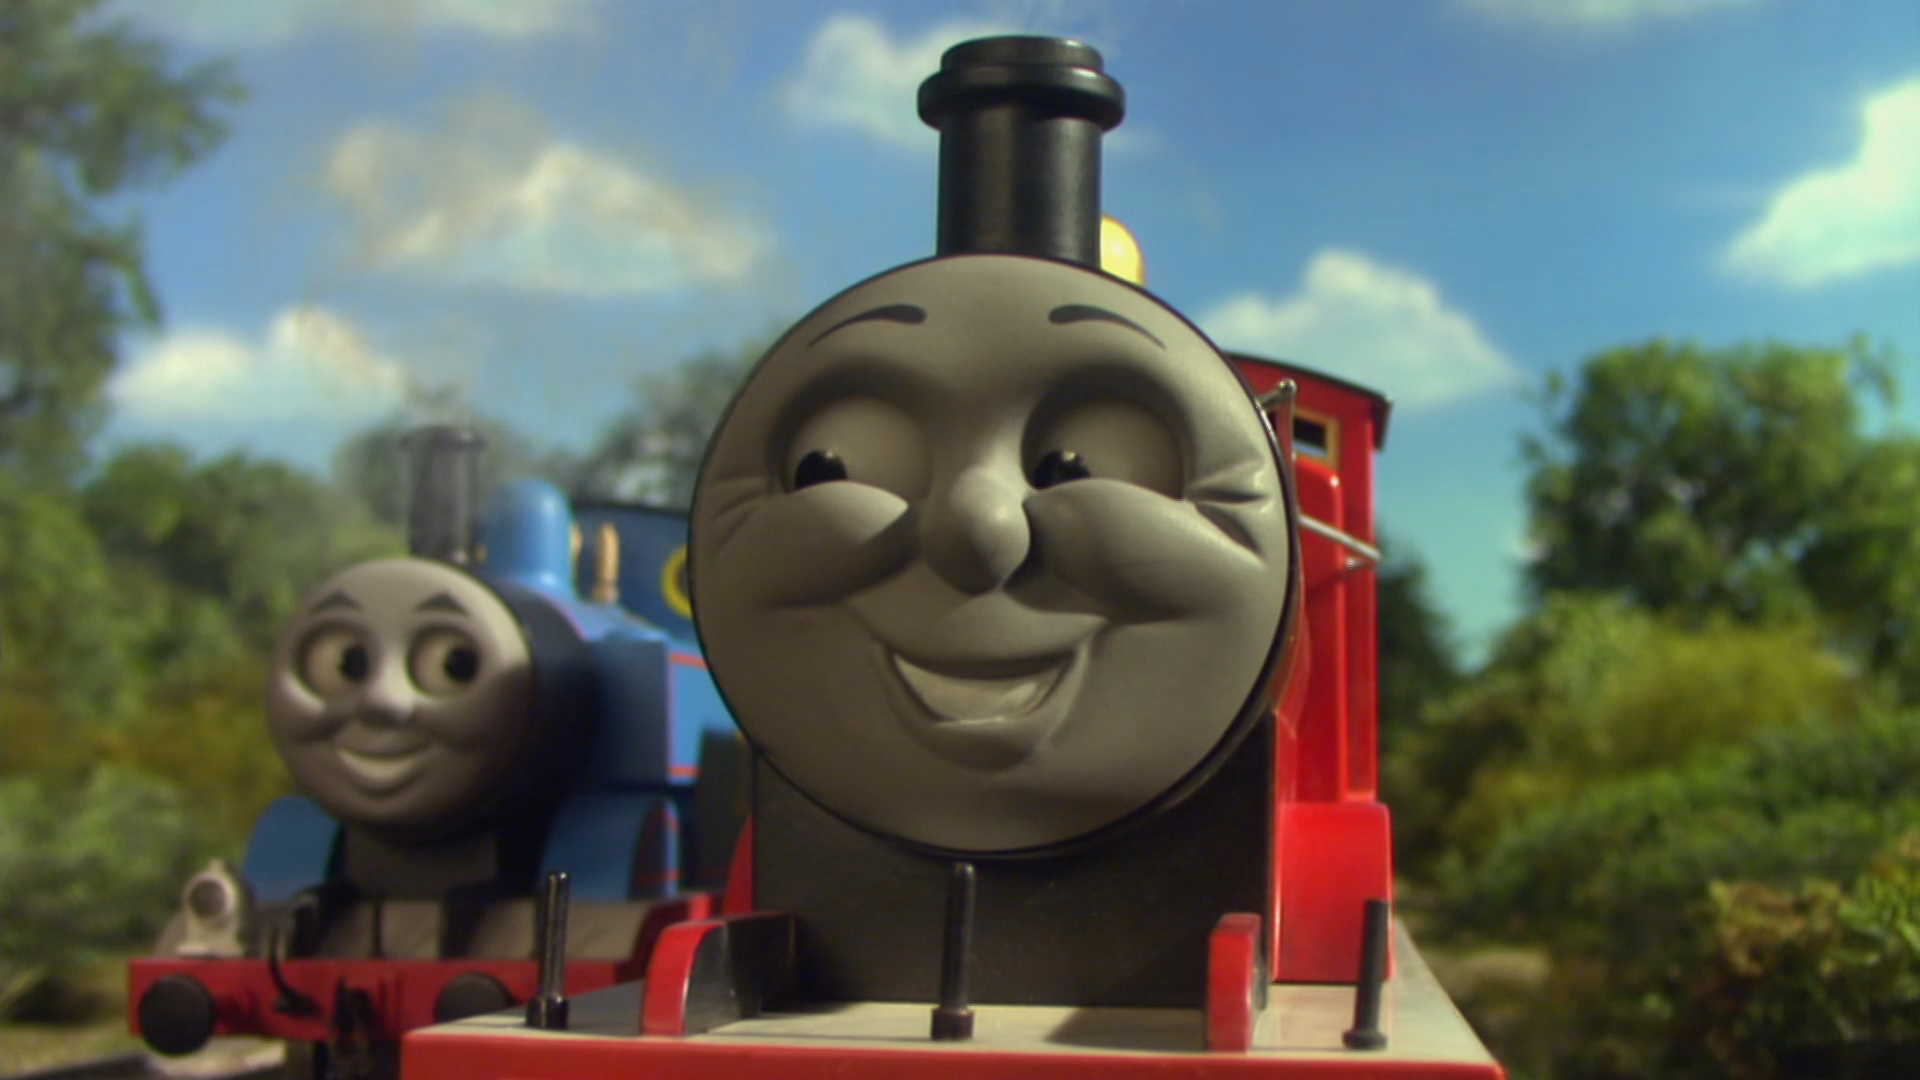 Thomas and James are Racing | Thomas the Tank Engine Wikia | Fandom powered by Wikia